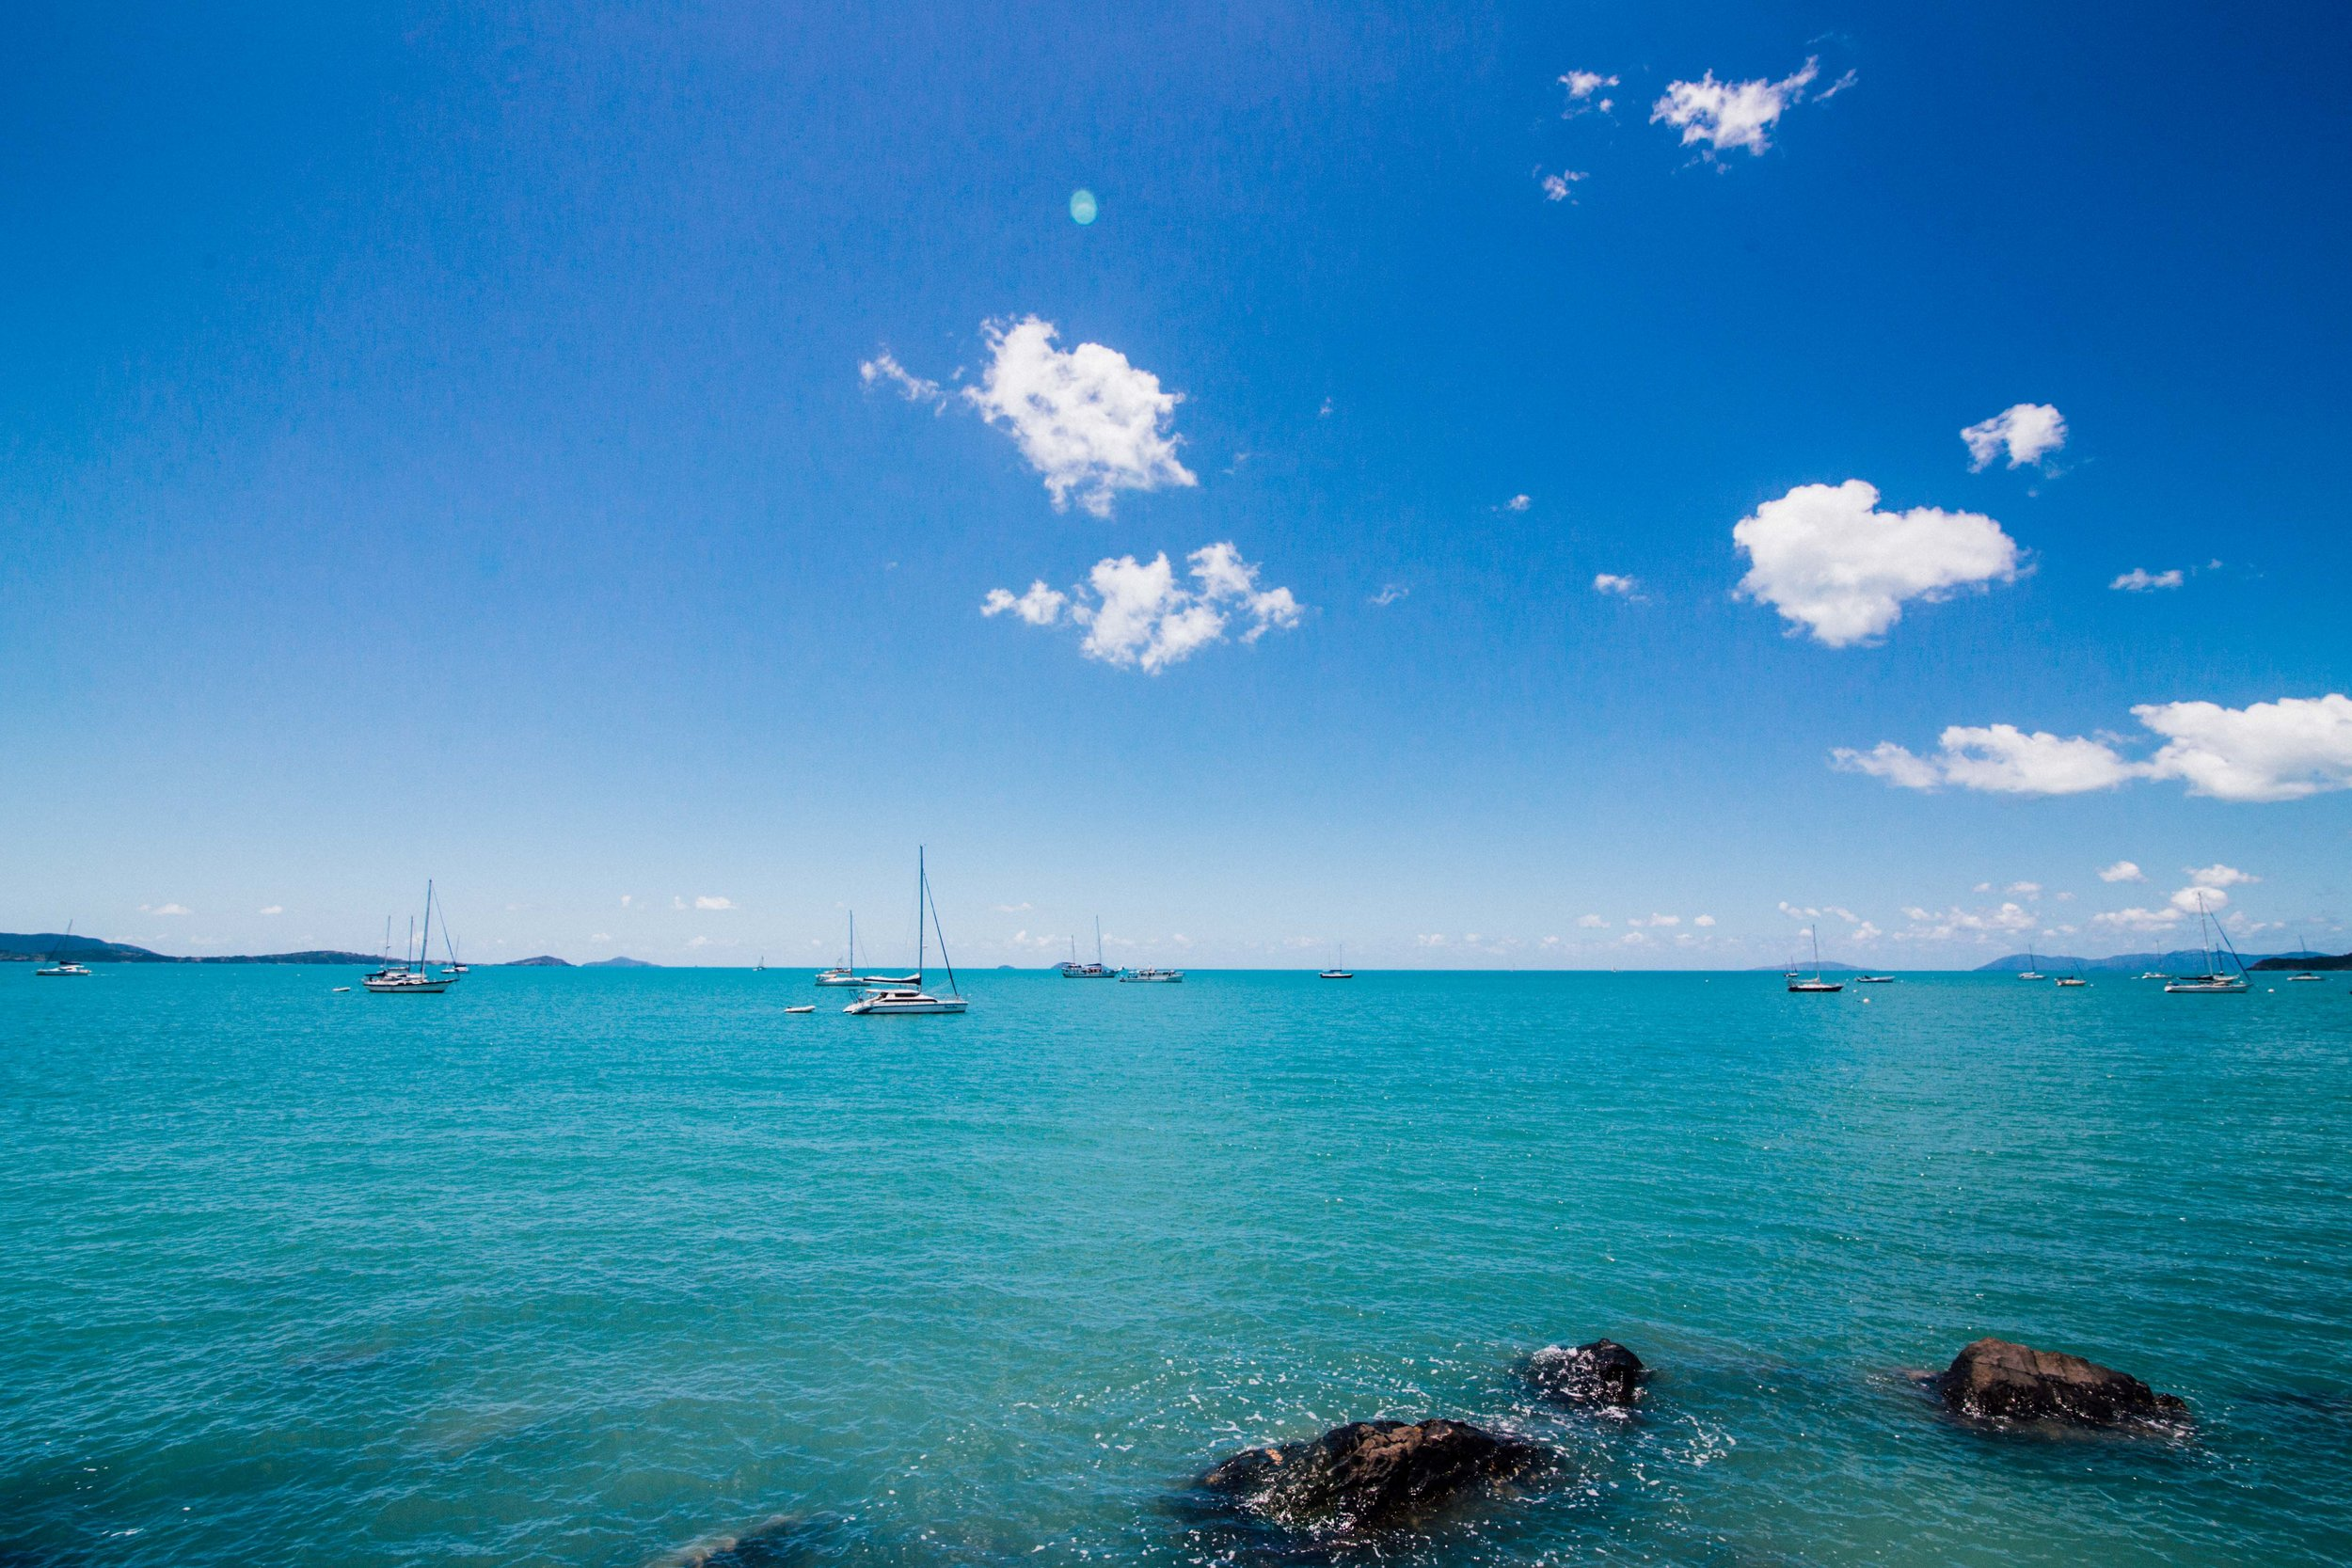 Shades of Blue in Airlie Beach. Photo: Marine Raynard.